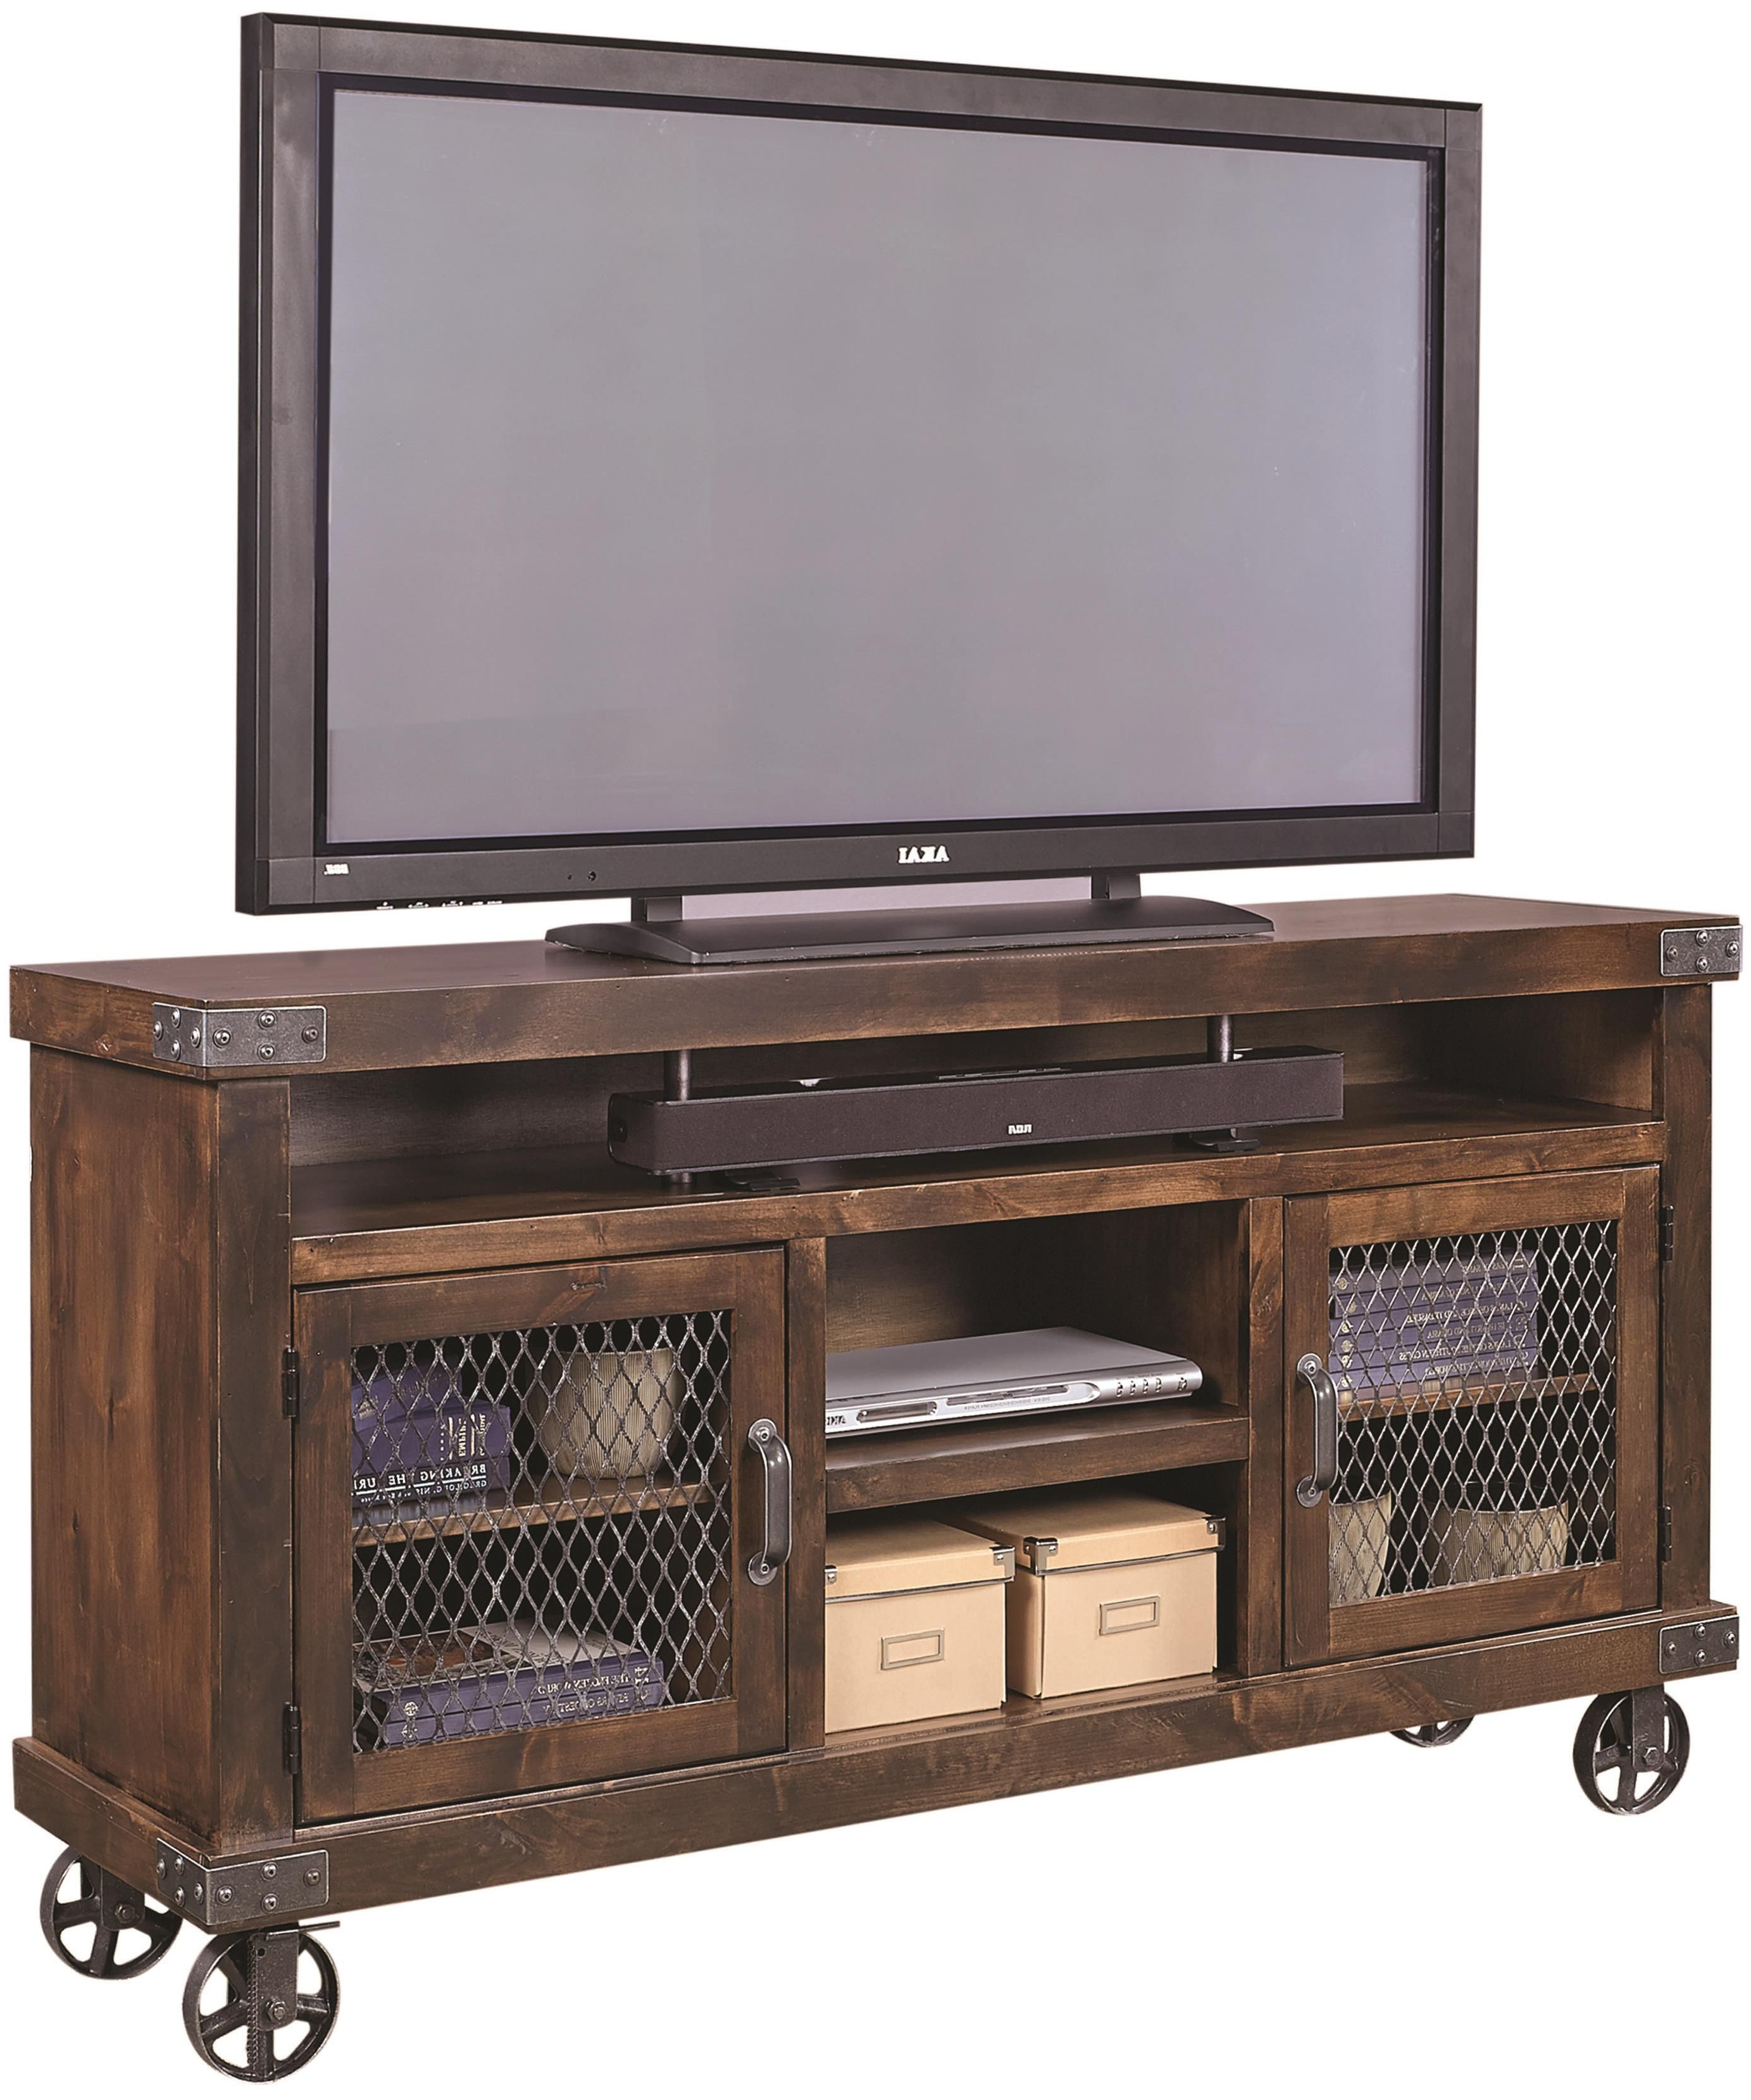 "Industrial 65"" Console With Metal Castersaspenhome In 2019 Inside Current Rustic Tv Stands For Sale (Gallery 14 of 20)"